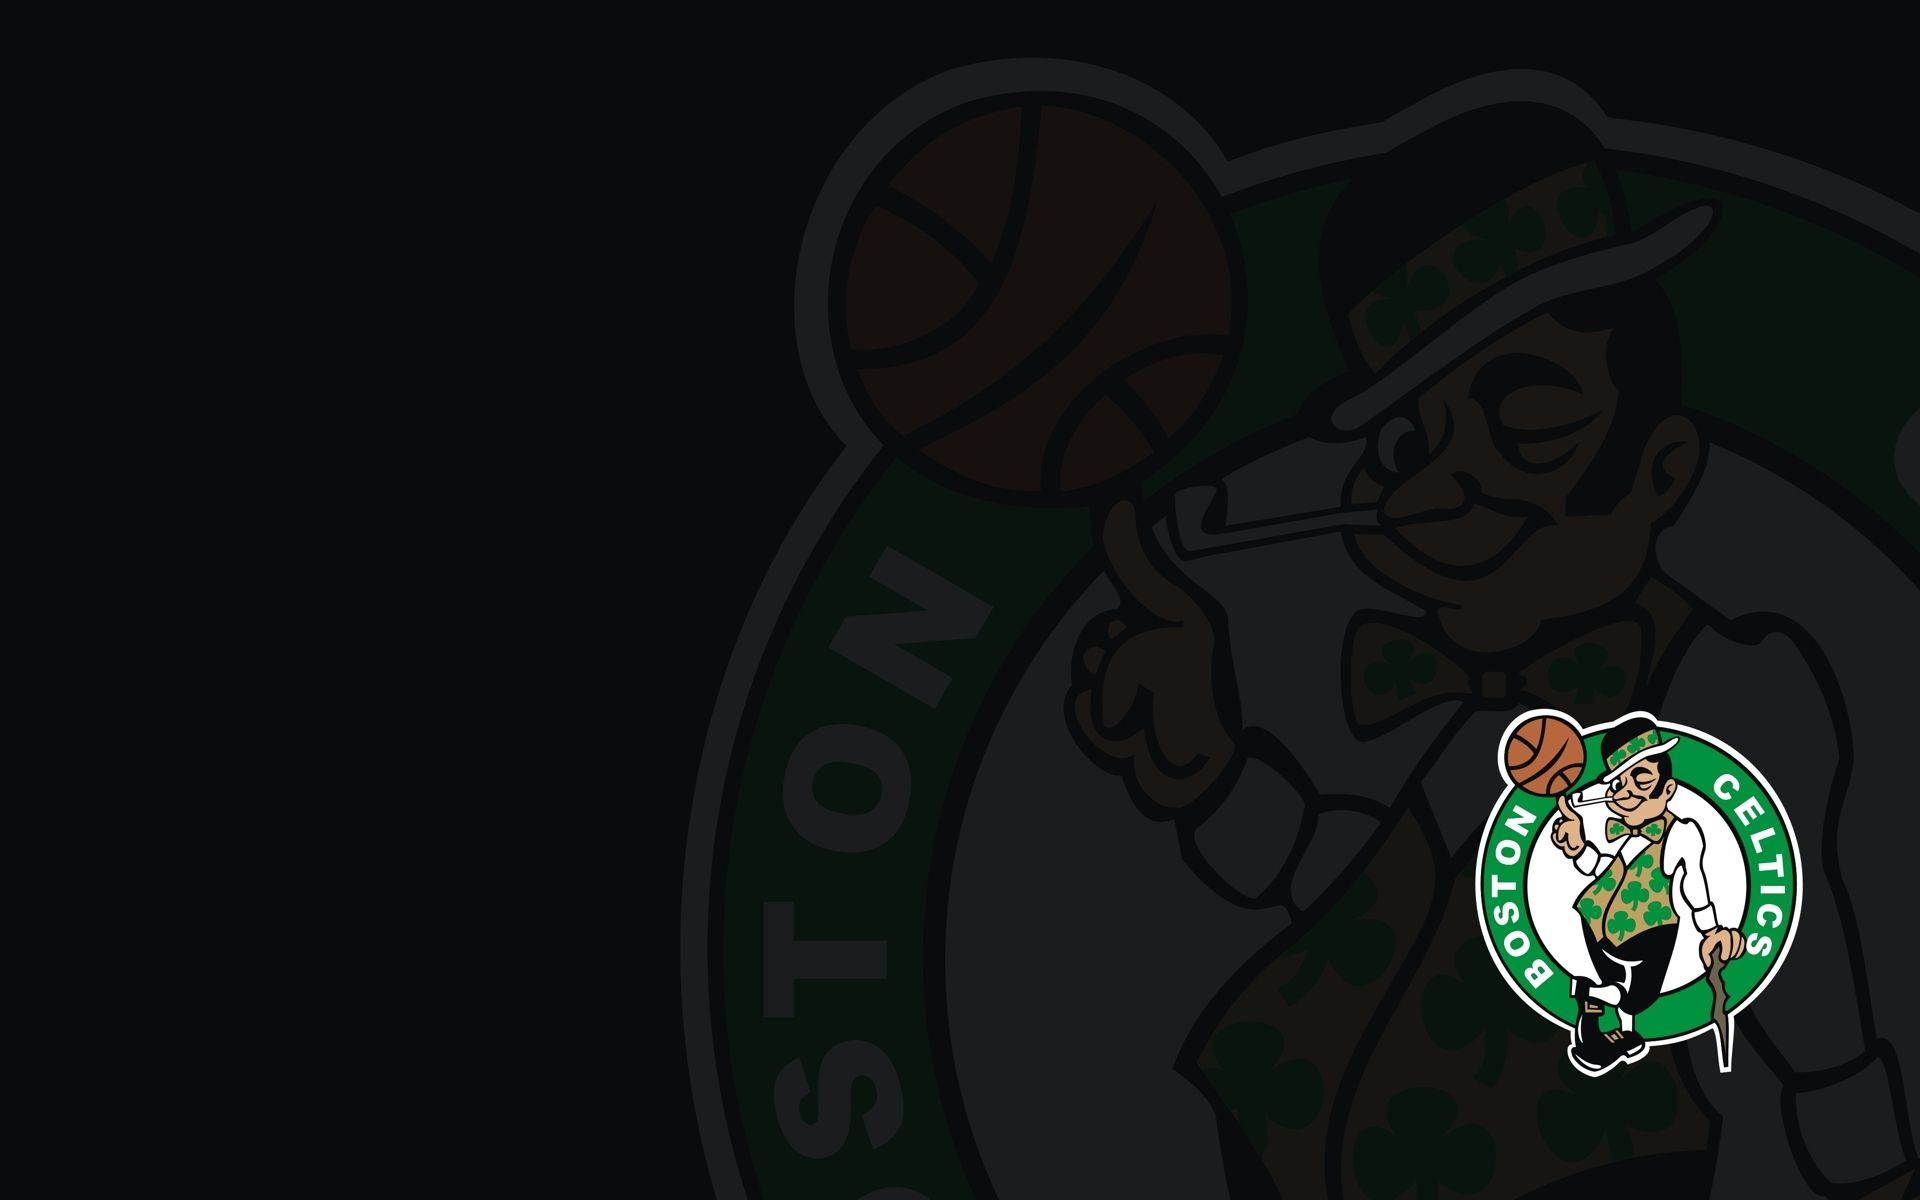 Celtics Hd Wallpaper Best Wallpaper Hd Boston Celtics Wallpaper Celtic Nba Wallpapers